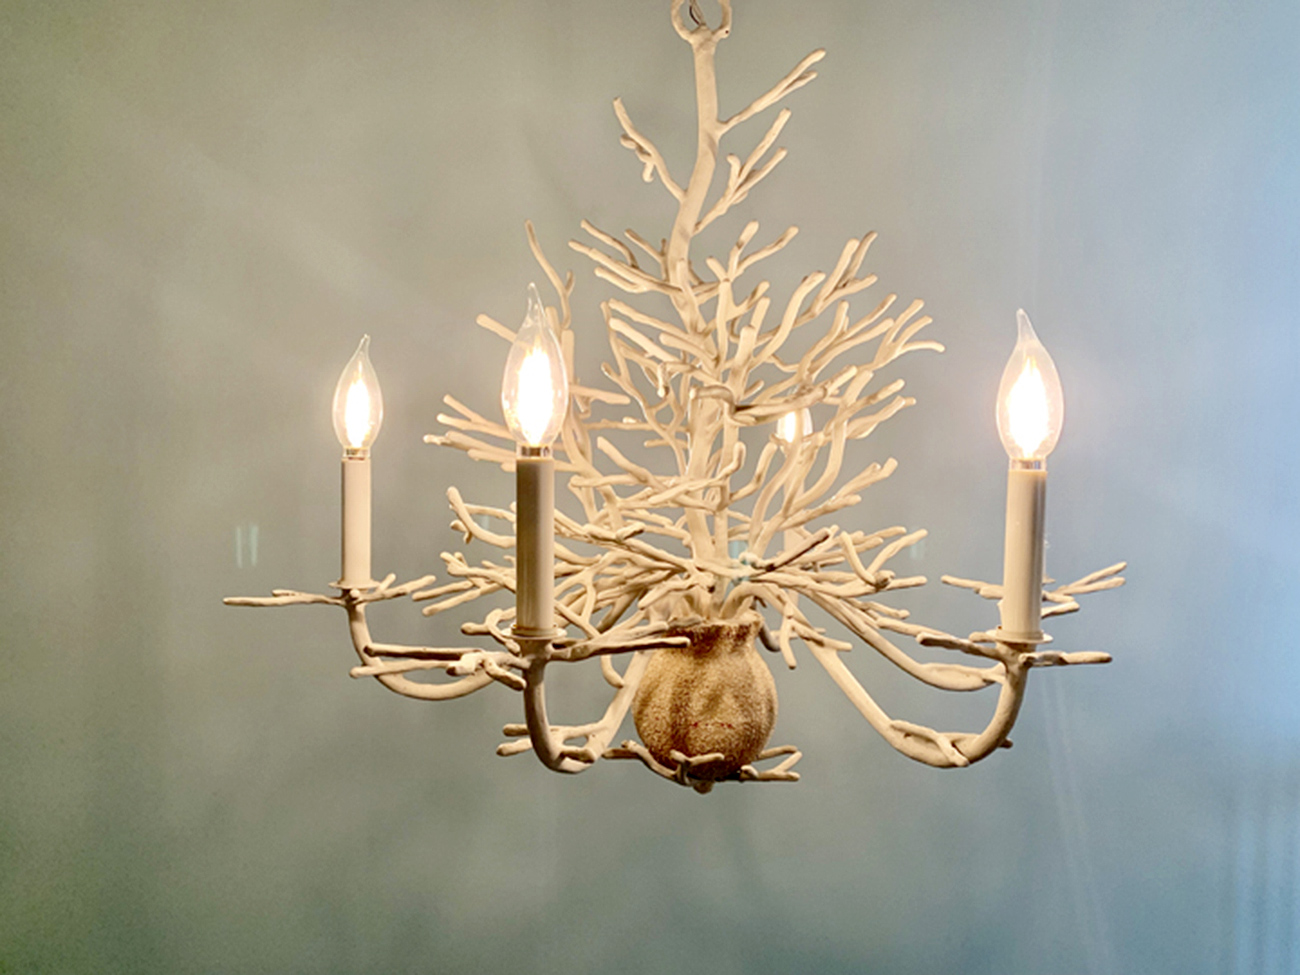 Coral chandelier with 5 lights for the stairwell in a beach house